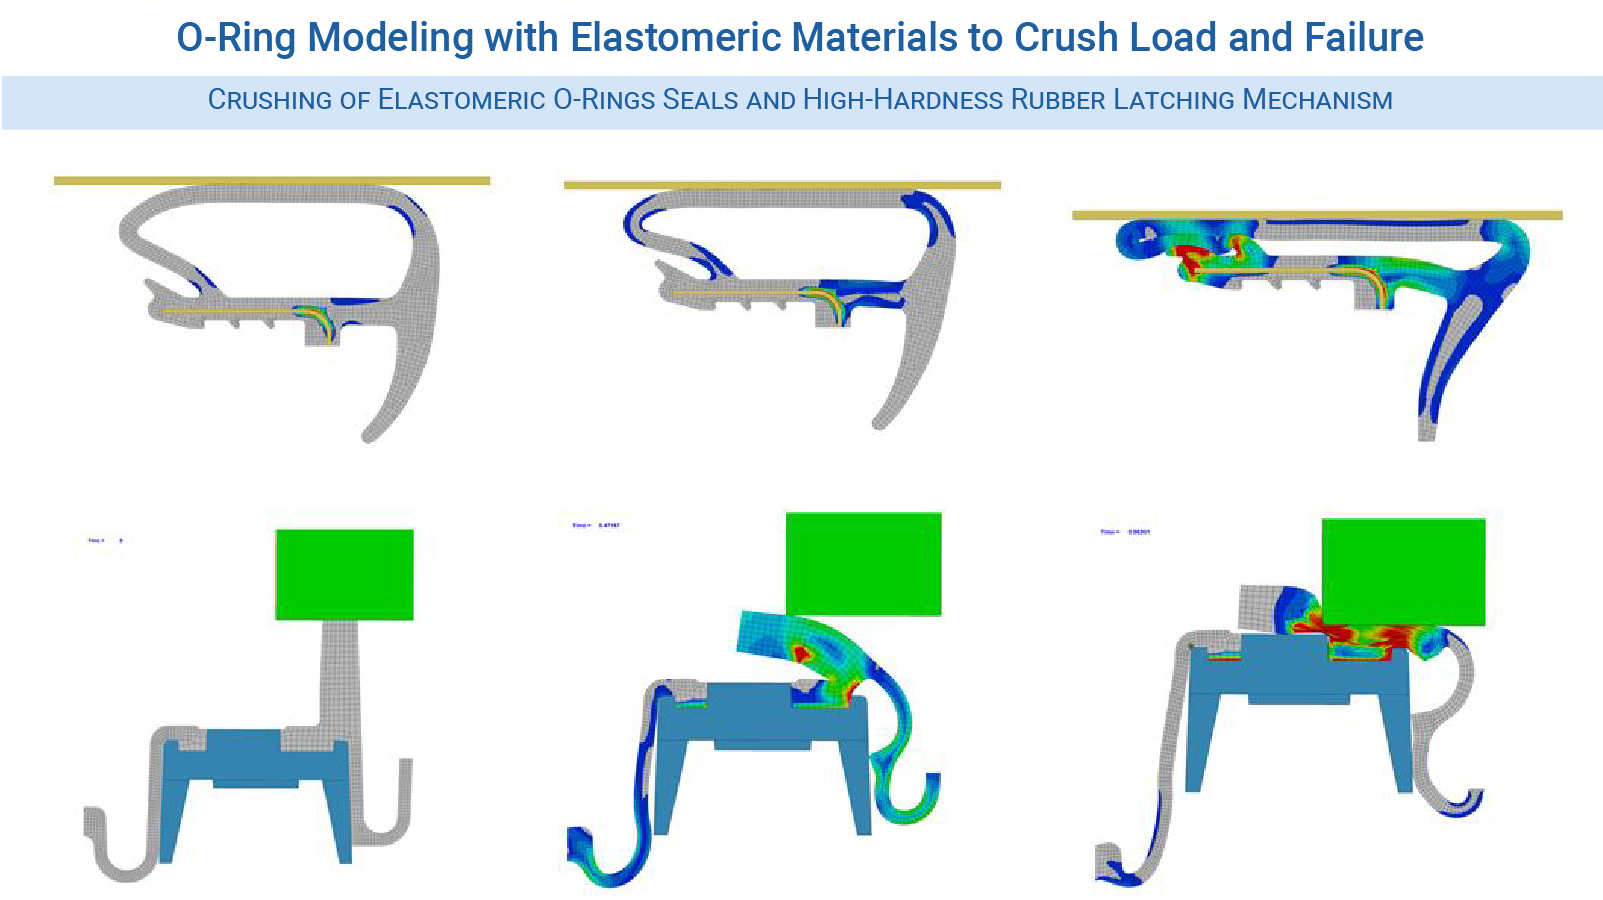 Figure 5 - Open O-Ring seal compaction and high-stiffness rubber latch mechanism crush to failure simulation